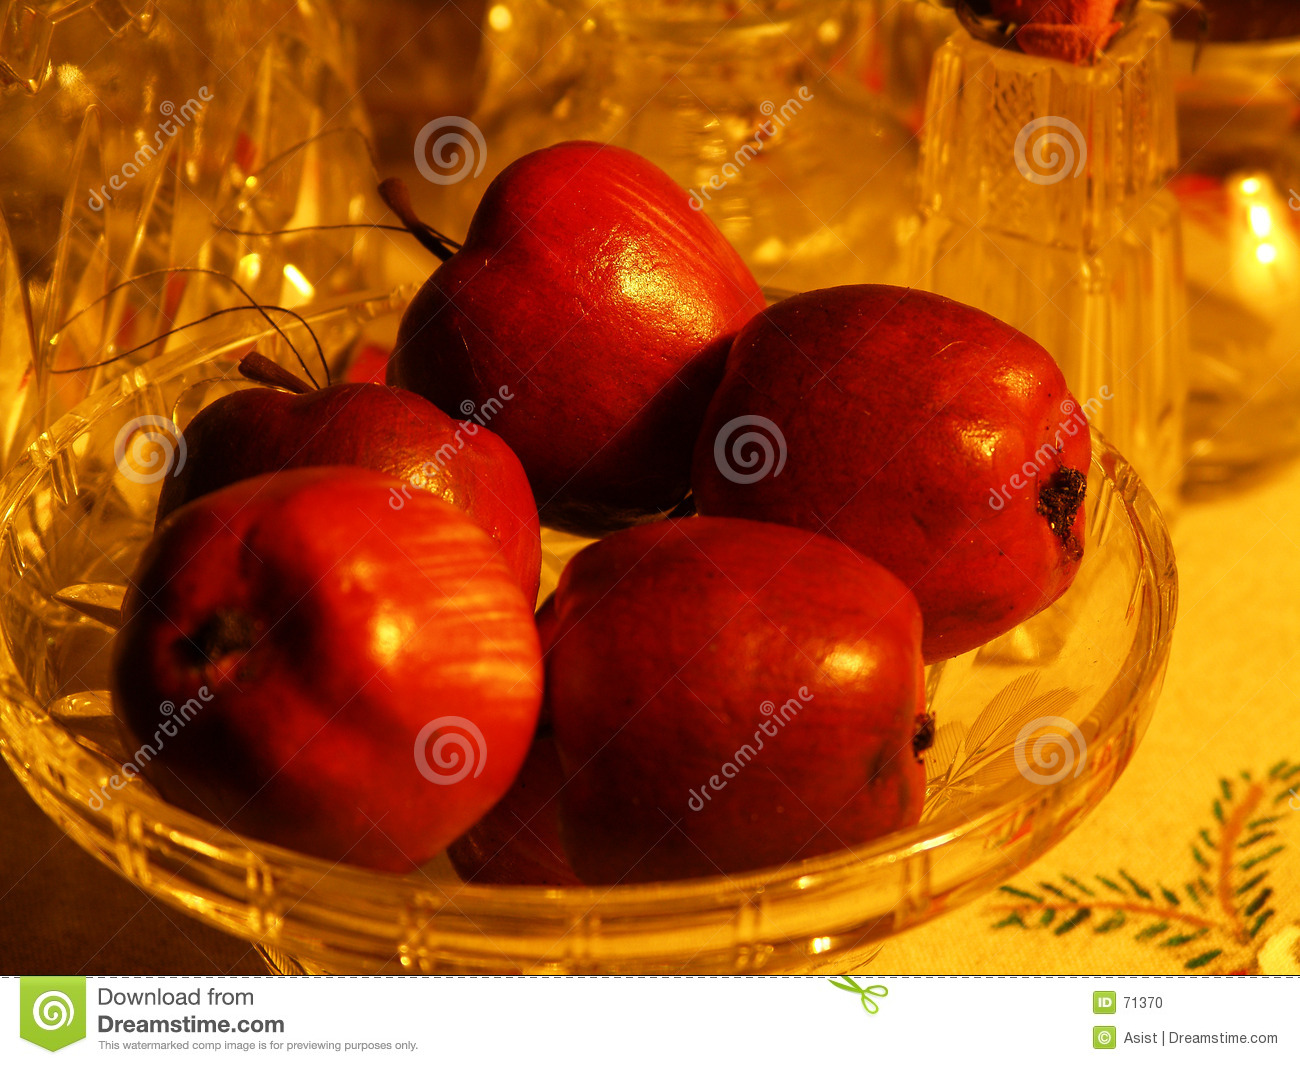 Red apples in bowl